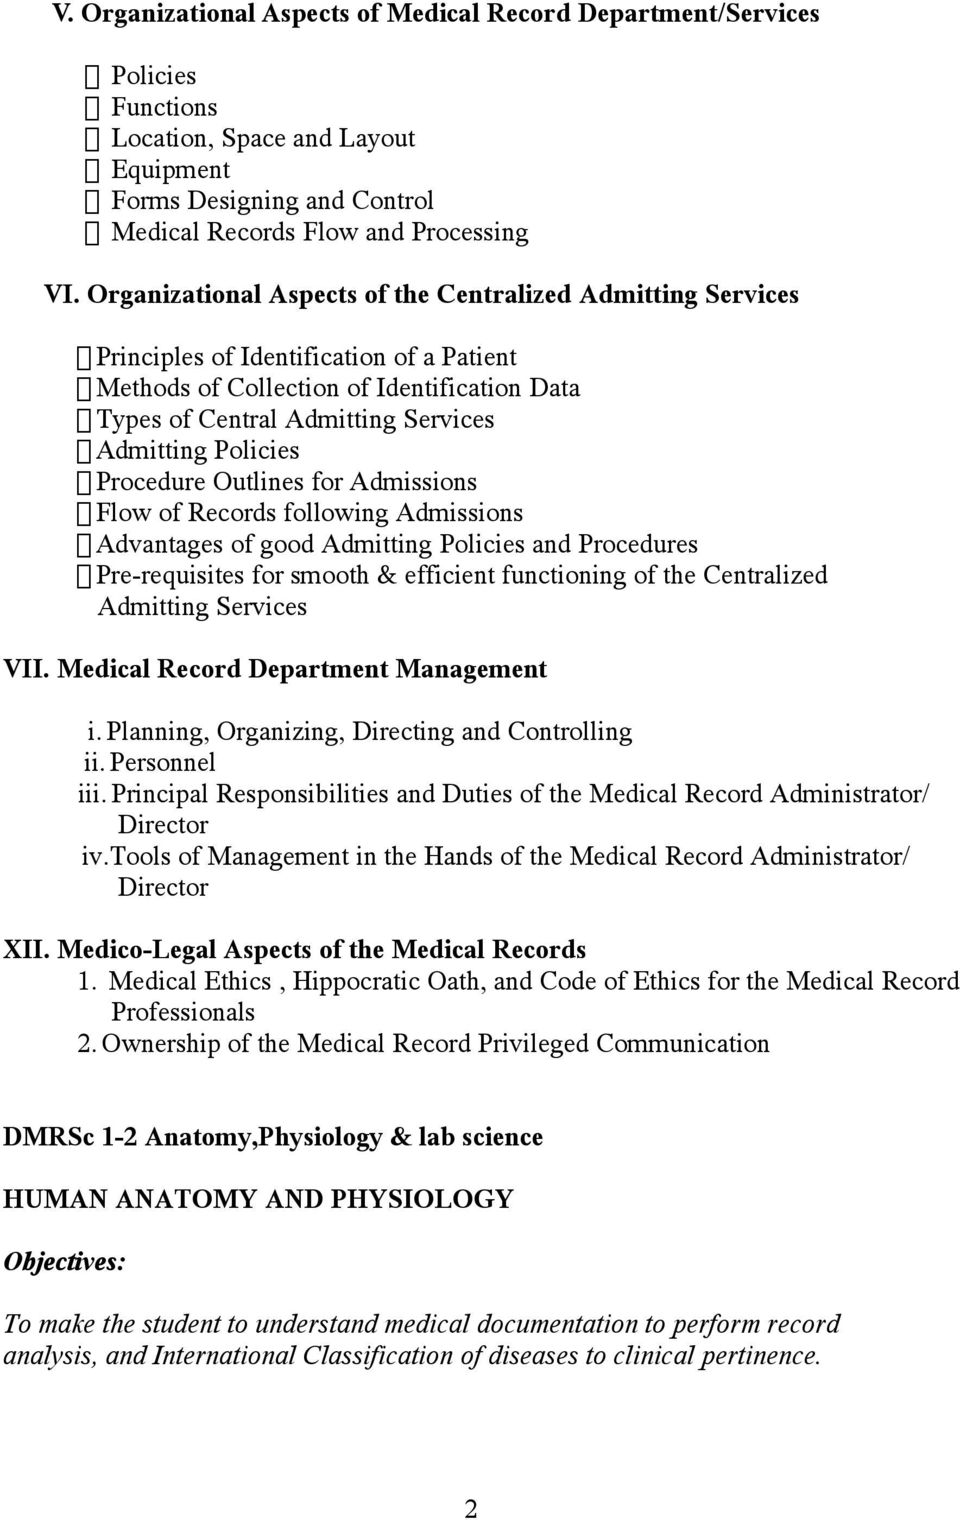 Syllabus For Dmrsc 1 1 Medical Record Science Pdf